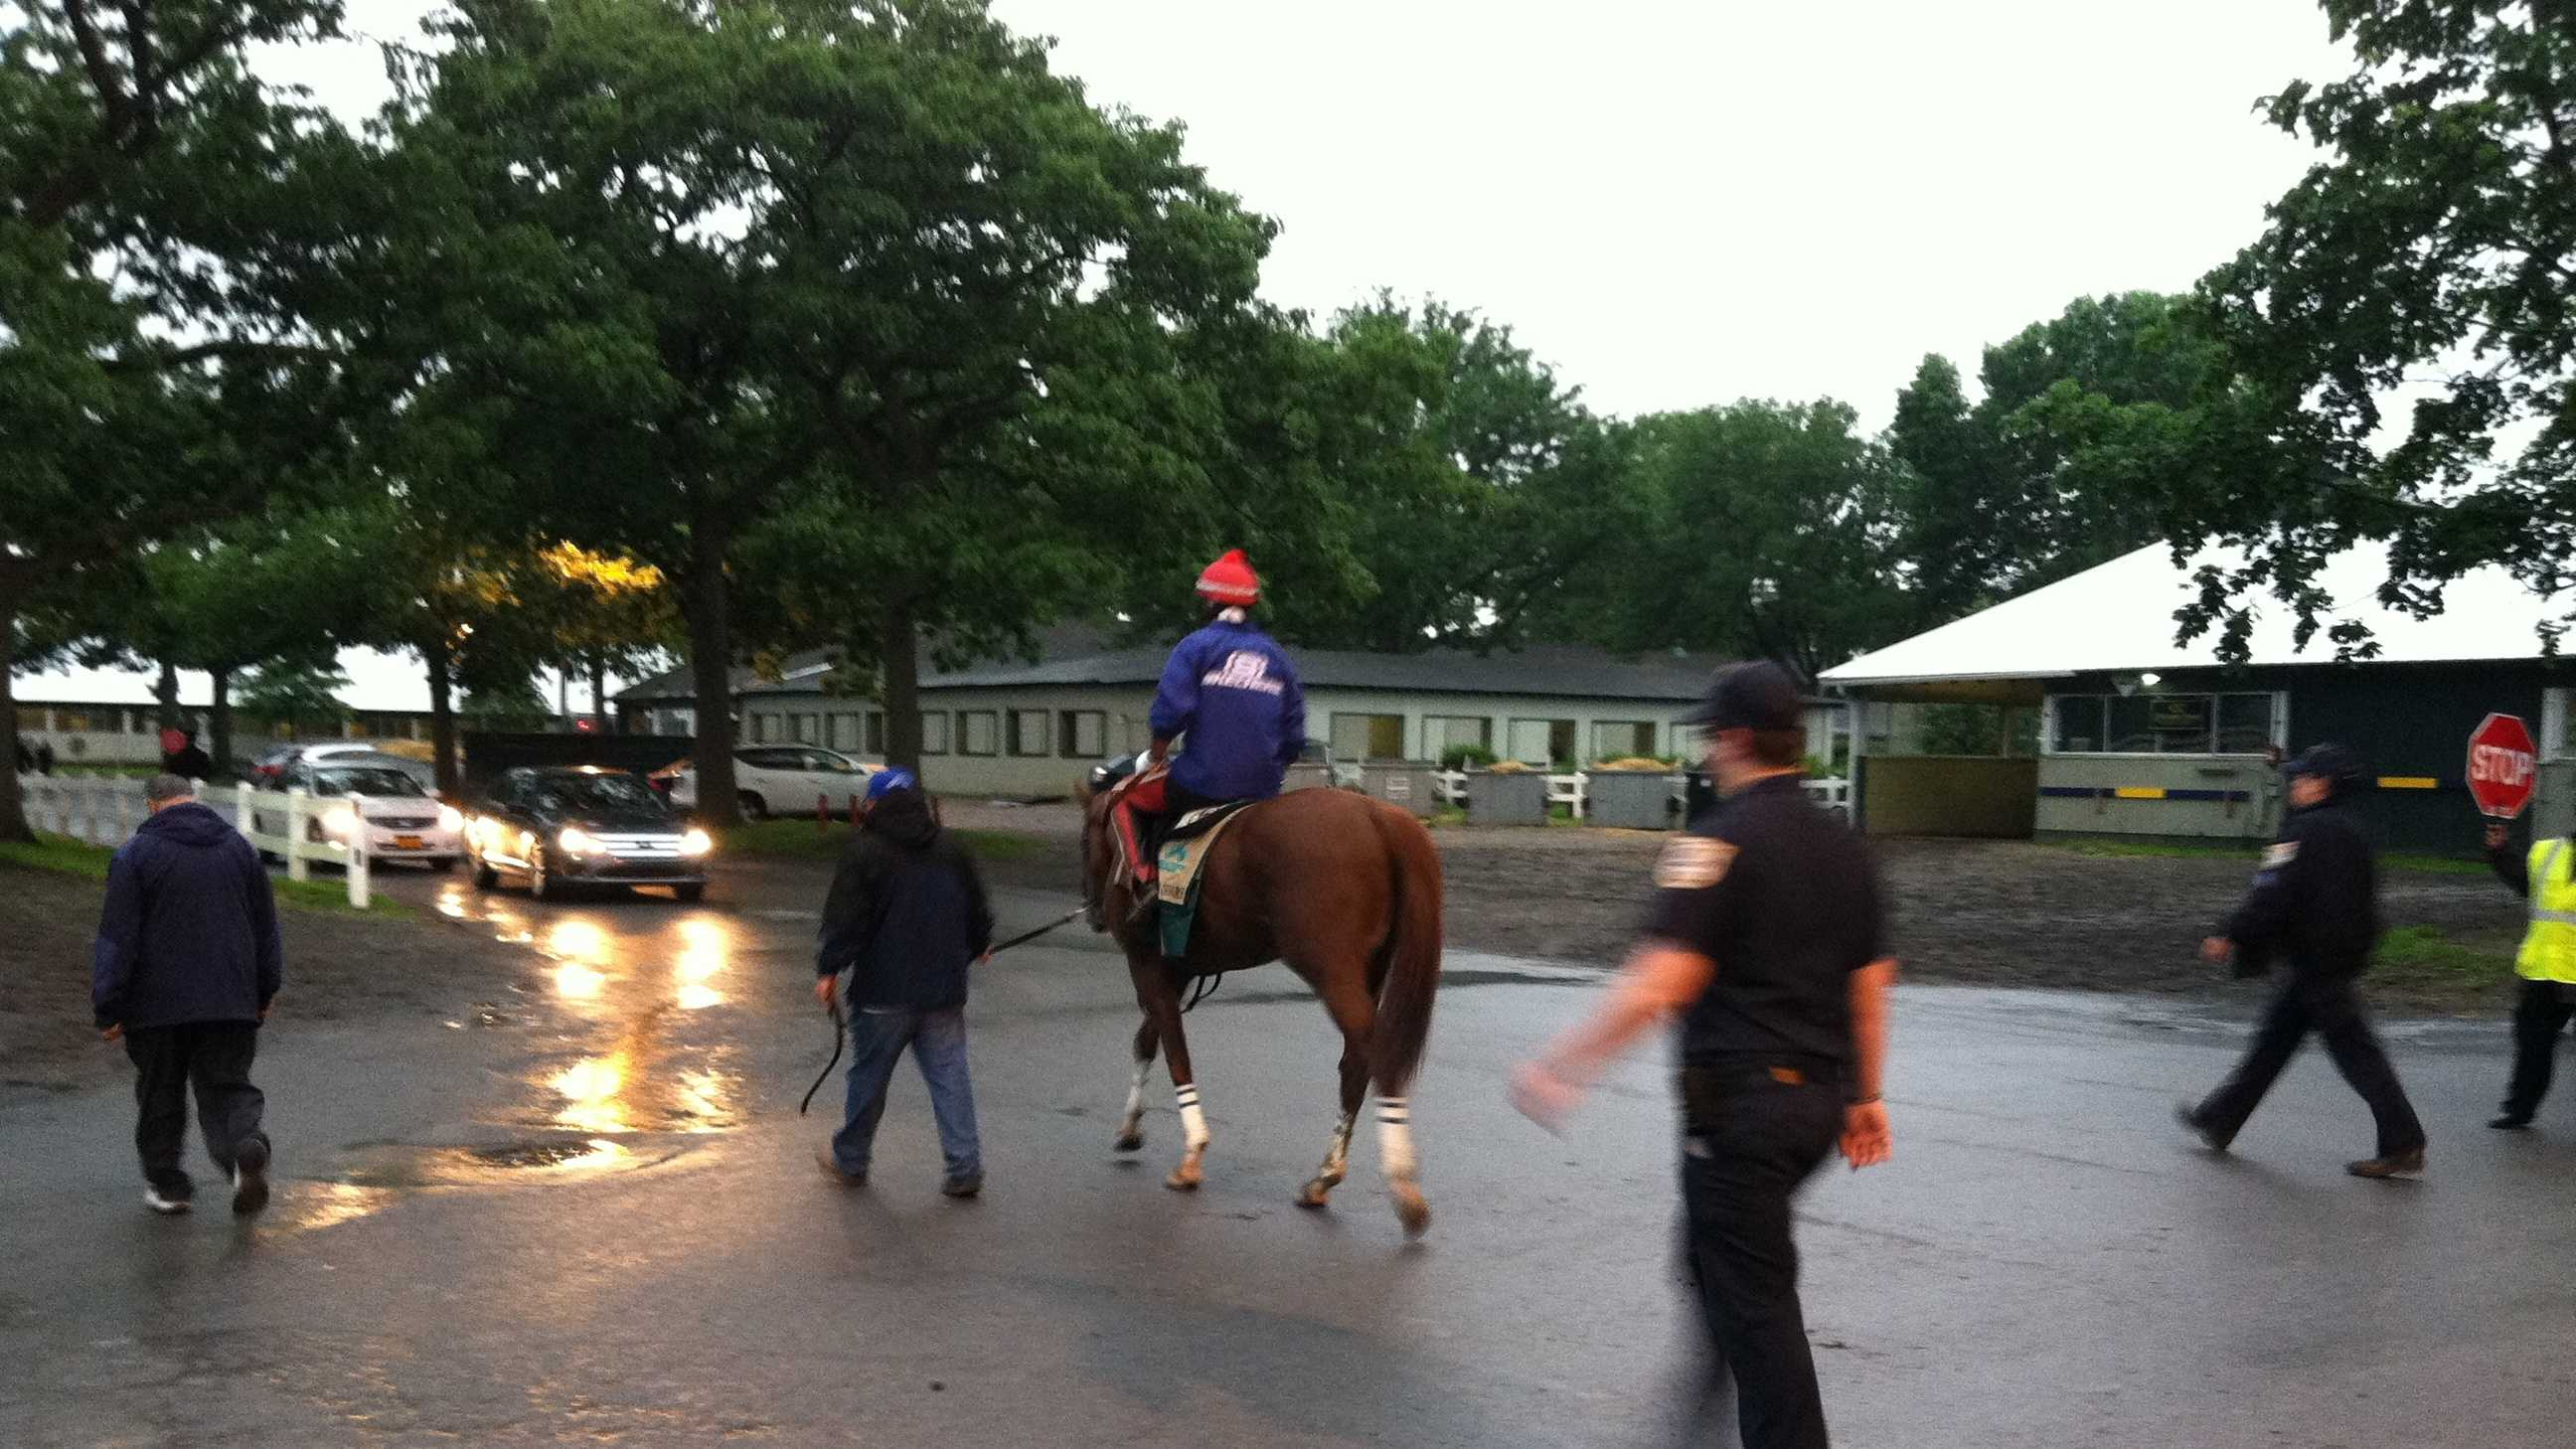 Walking back to the barn after a wet morning at the track for California Chrome